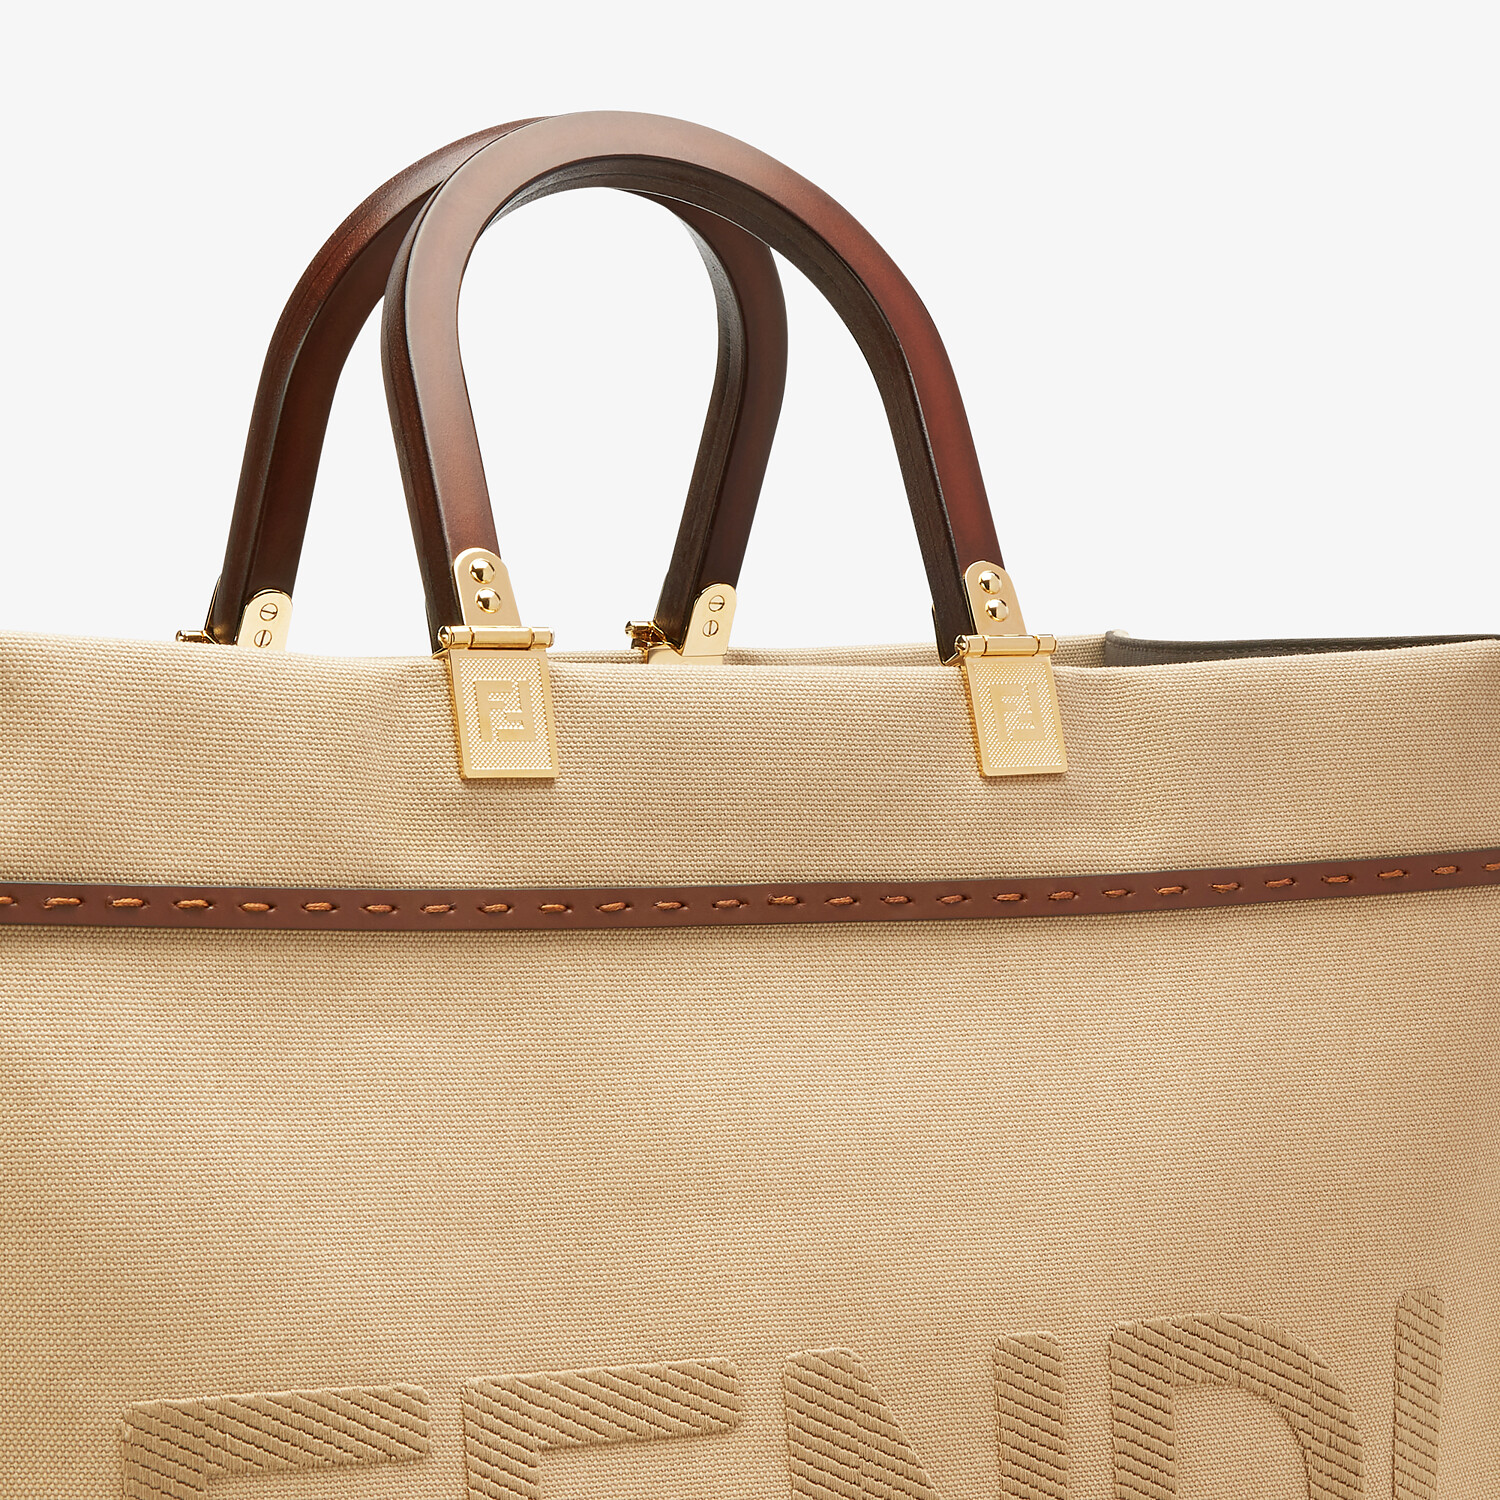 FENDI FENDI SUNSHINE MEDIUM - Beige canvas bag - view 6 detail